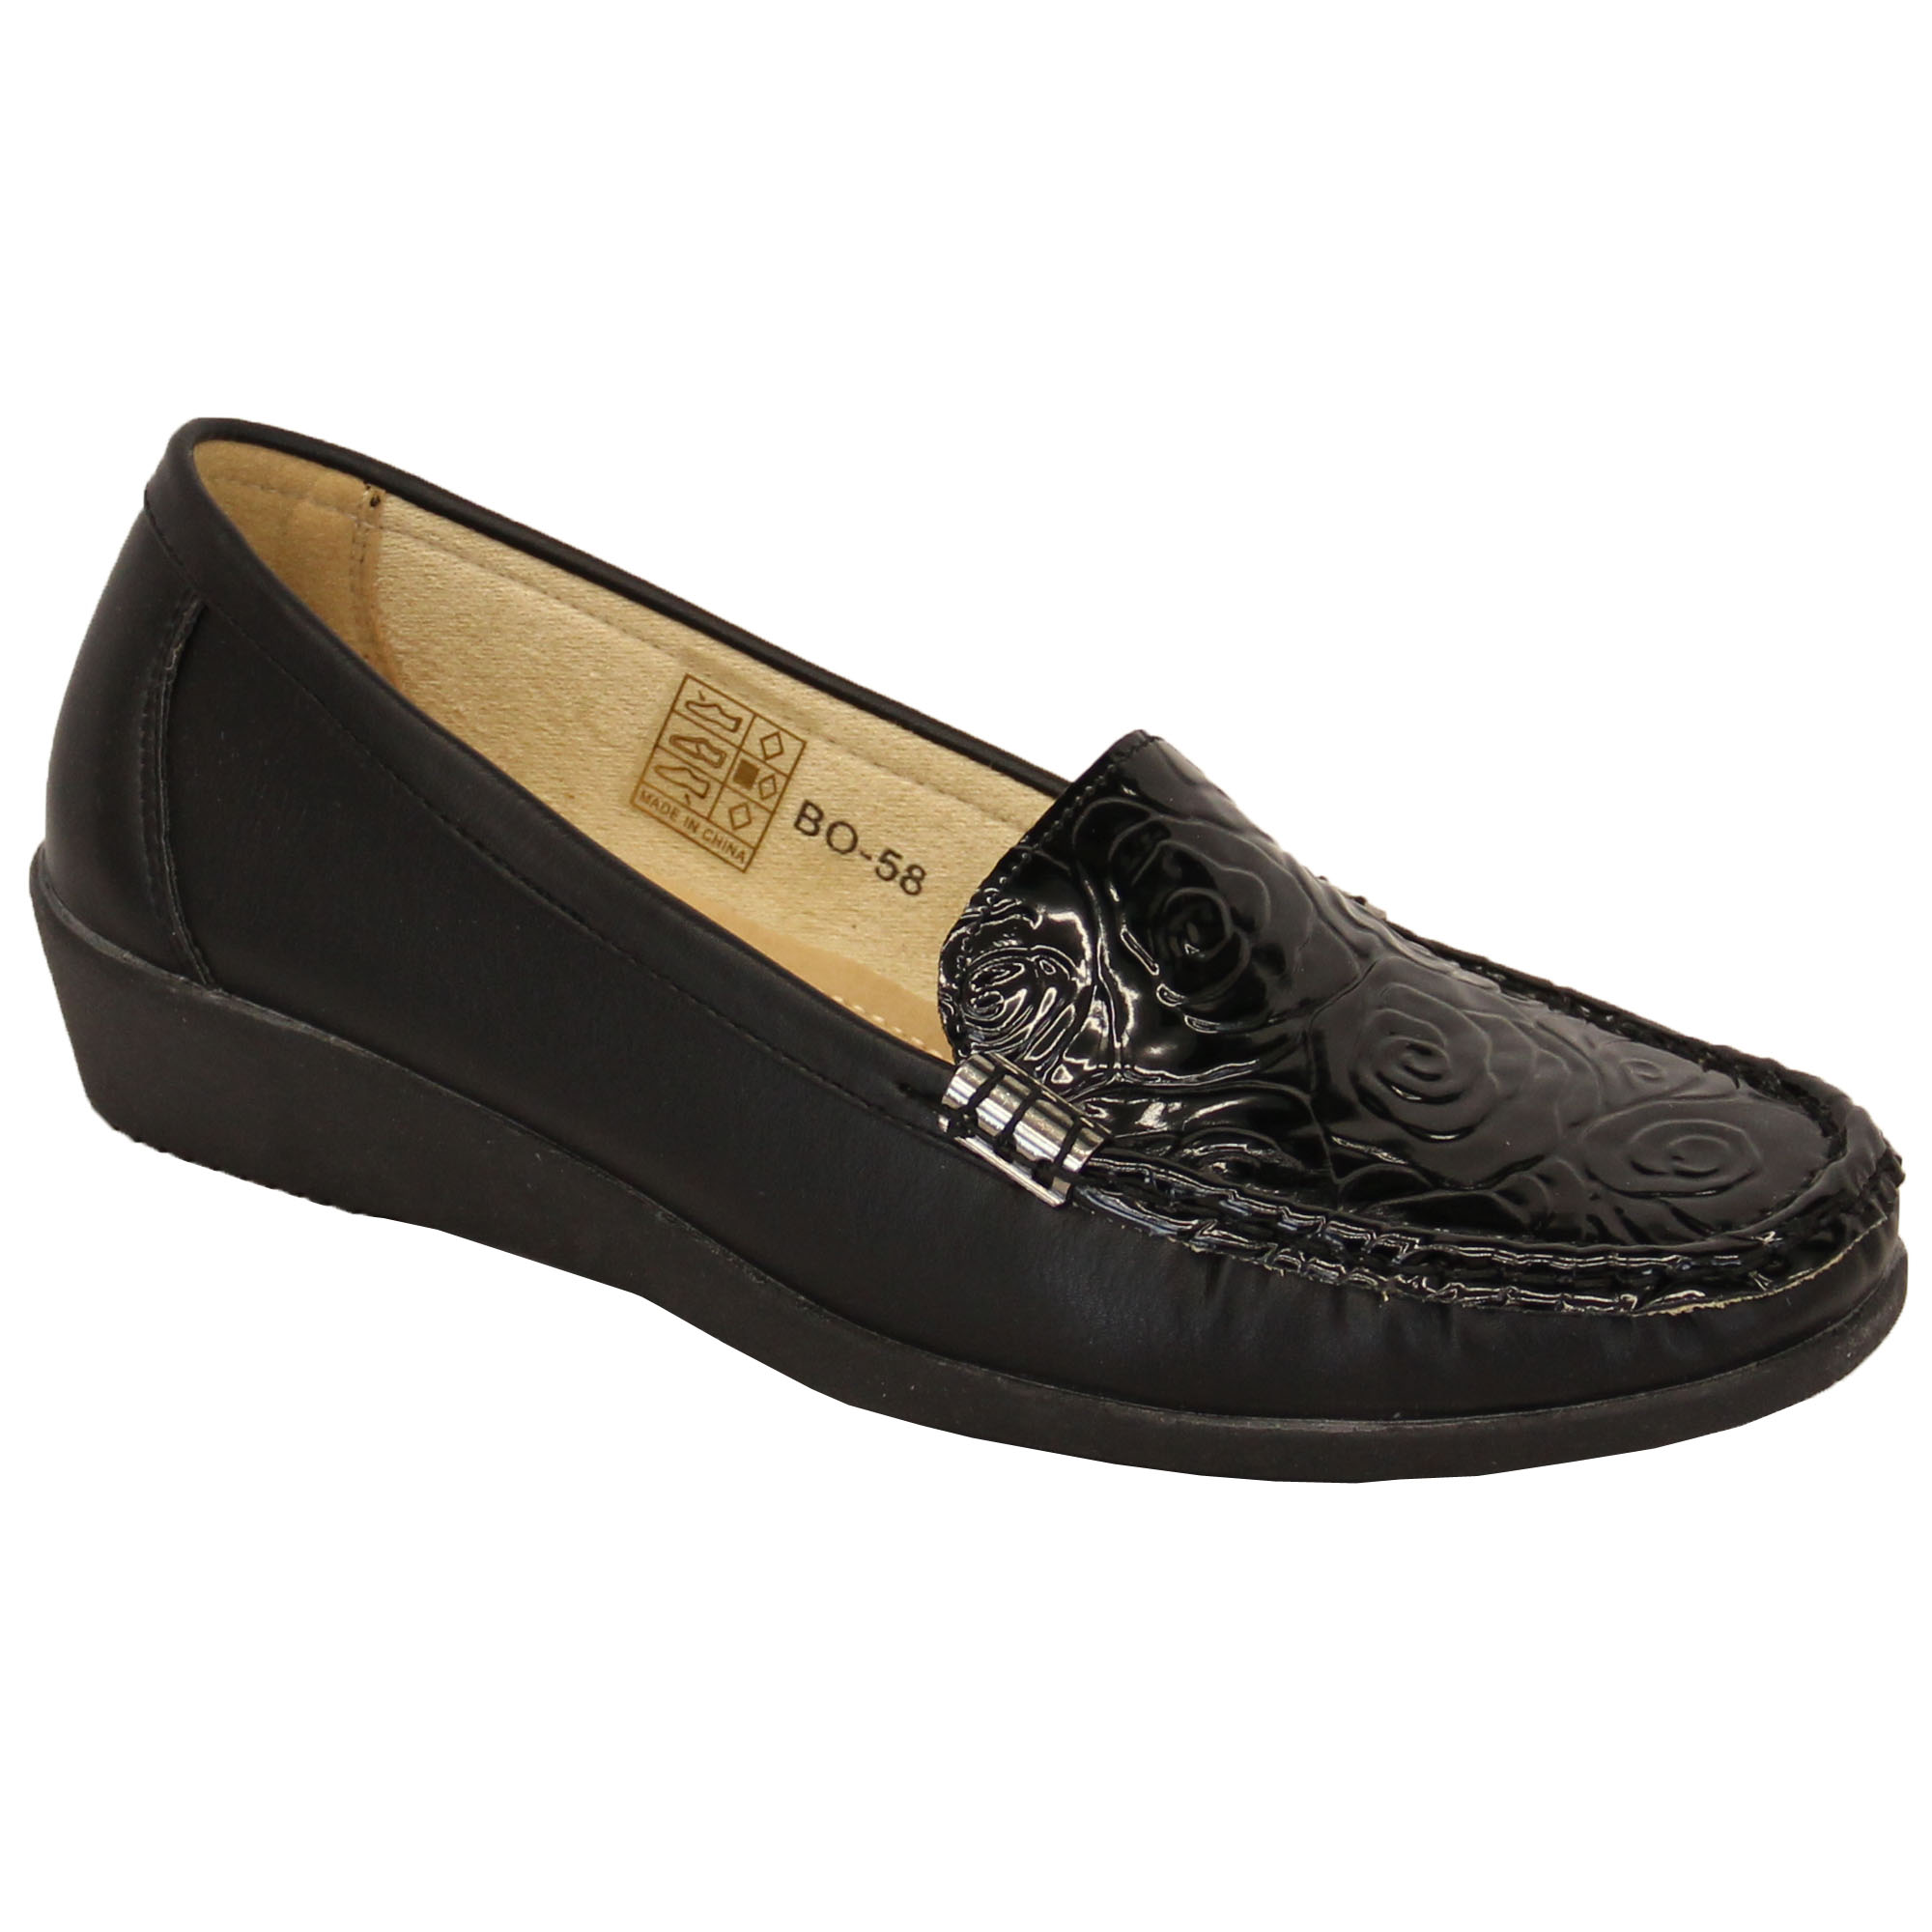 Ladies Womens Loafers Slip On Patent Look Moccasins Shoes ...